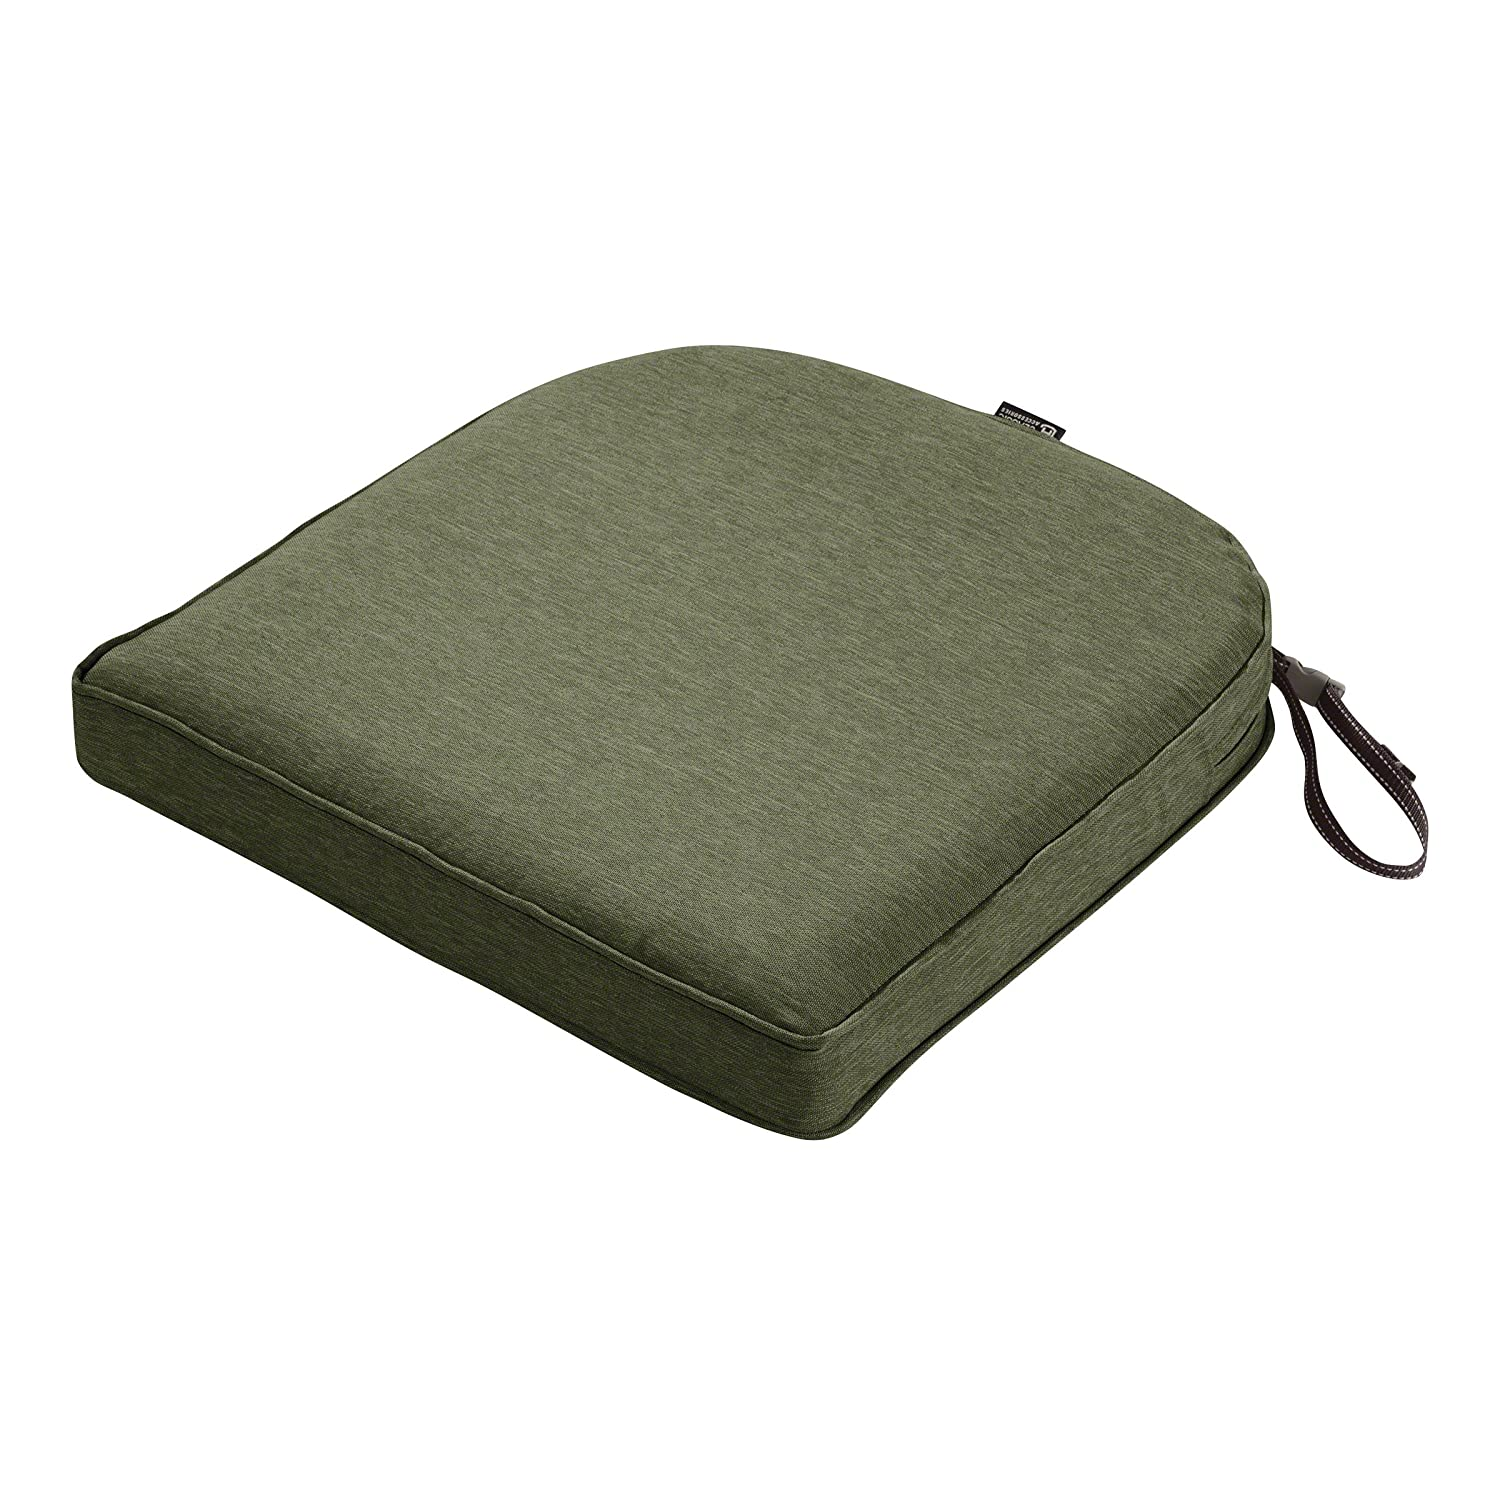 "Classic Accessories Montlake Cont. Seat Cushion Foam & Slip Cover, Heather Fern, 18x18x2"" Thick"